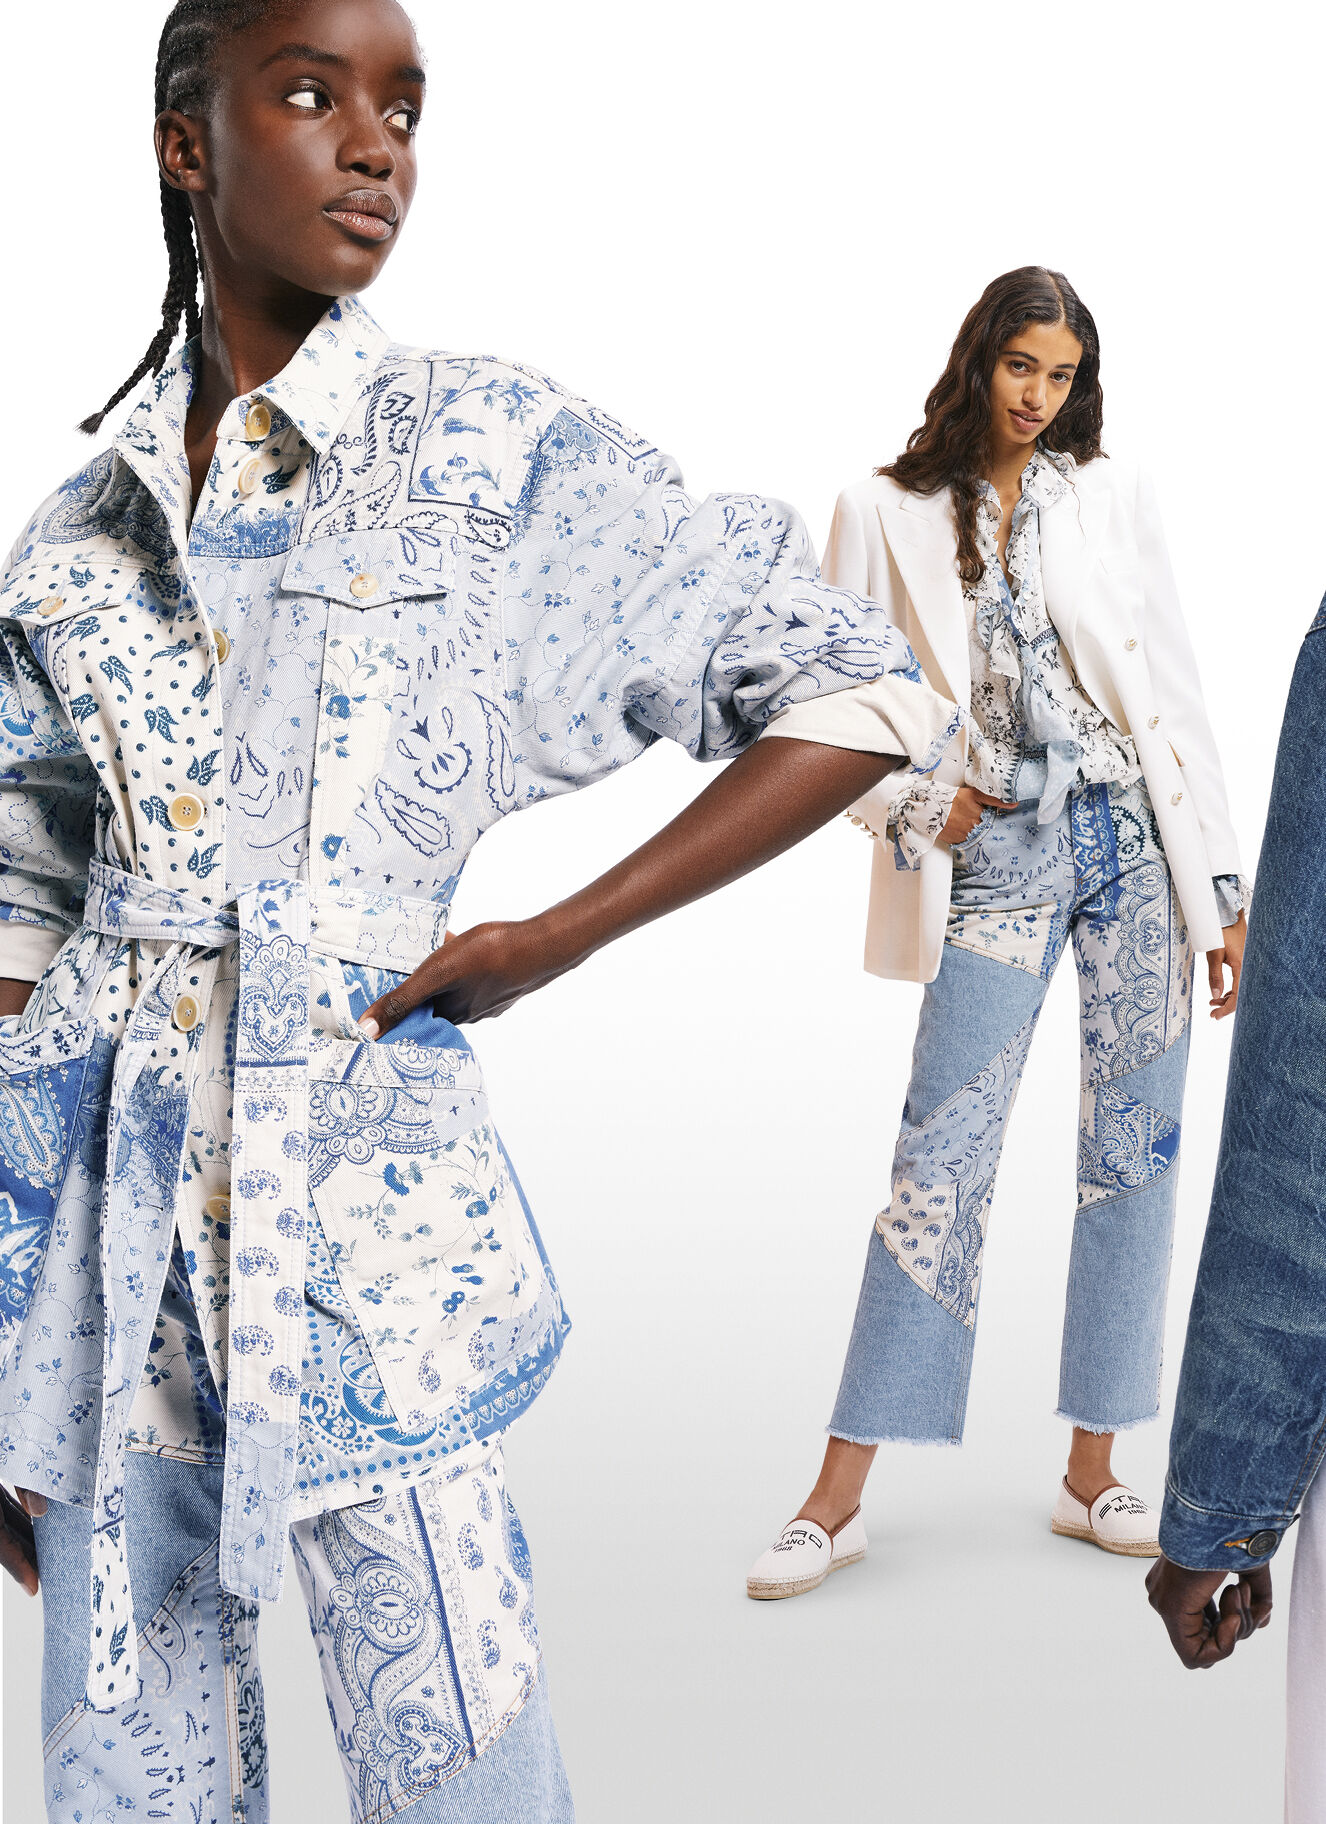 ETRO_SS21_Unisex_Catalogue_60